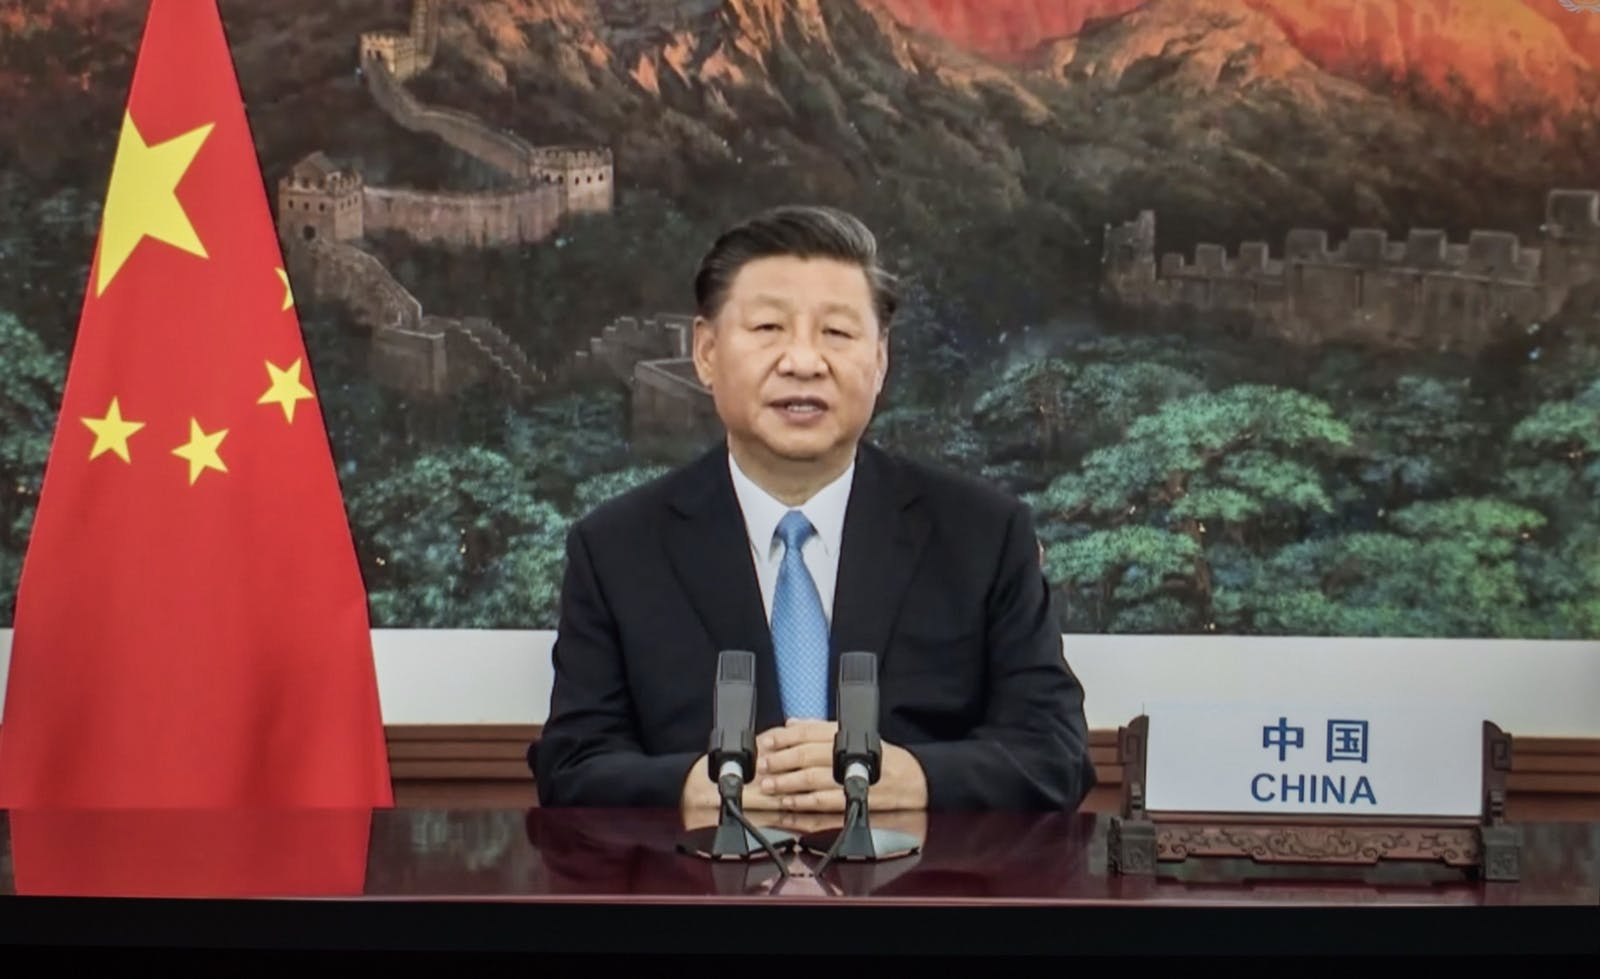 Xi Jinping, China's president. Photo by Bloomberg.